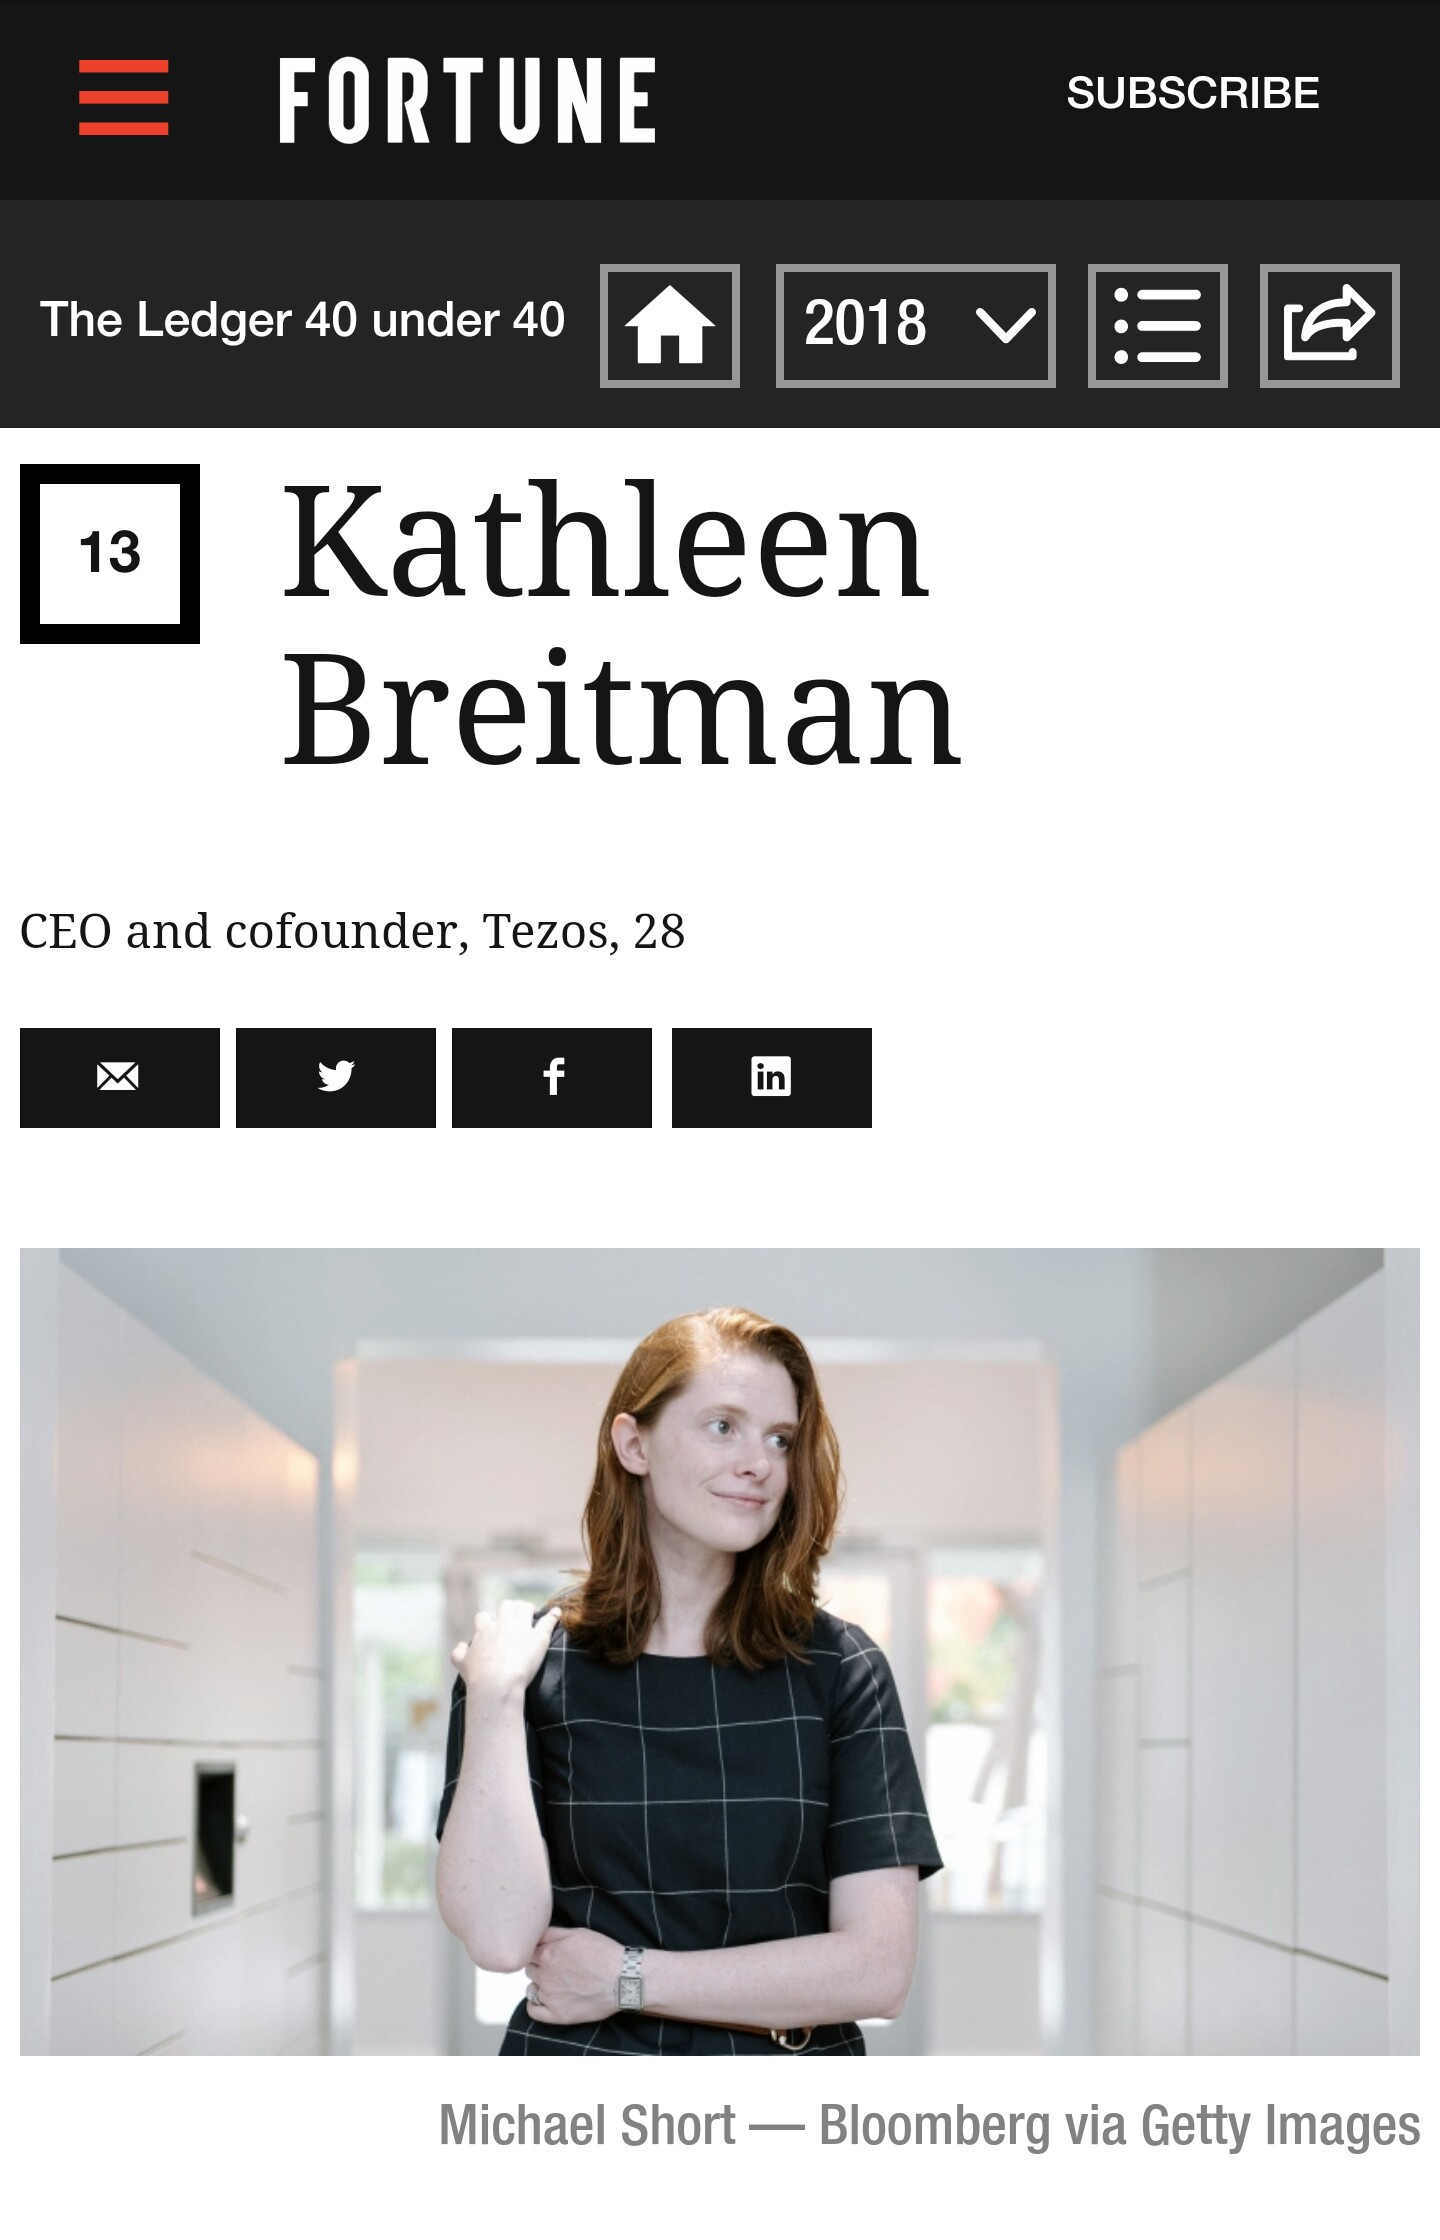 http://fortune.com/the-ledger-40-under-40/kathleen-breitman-13/